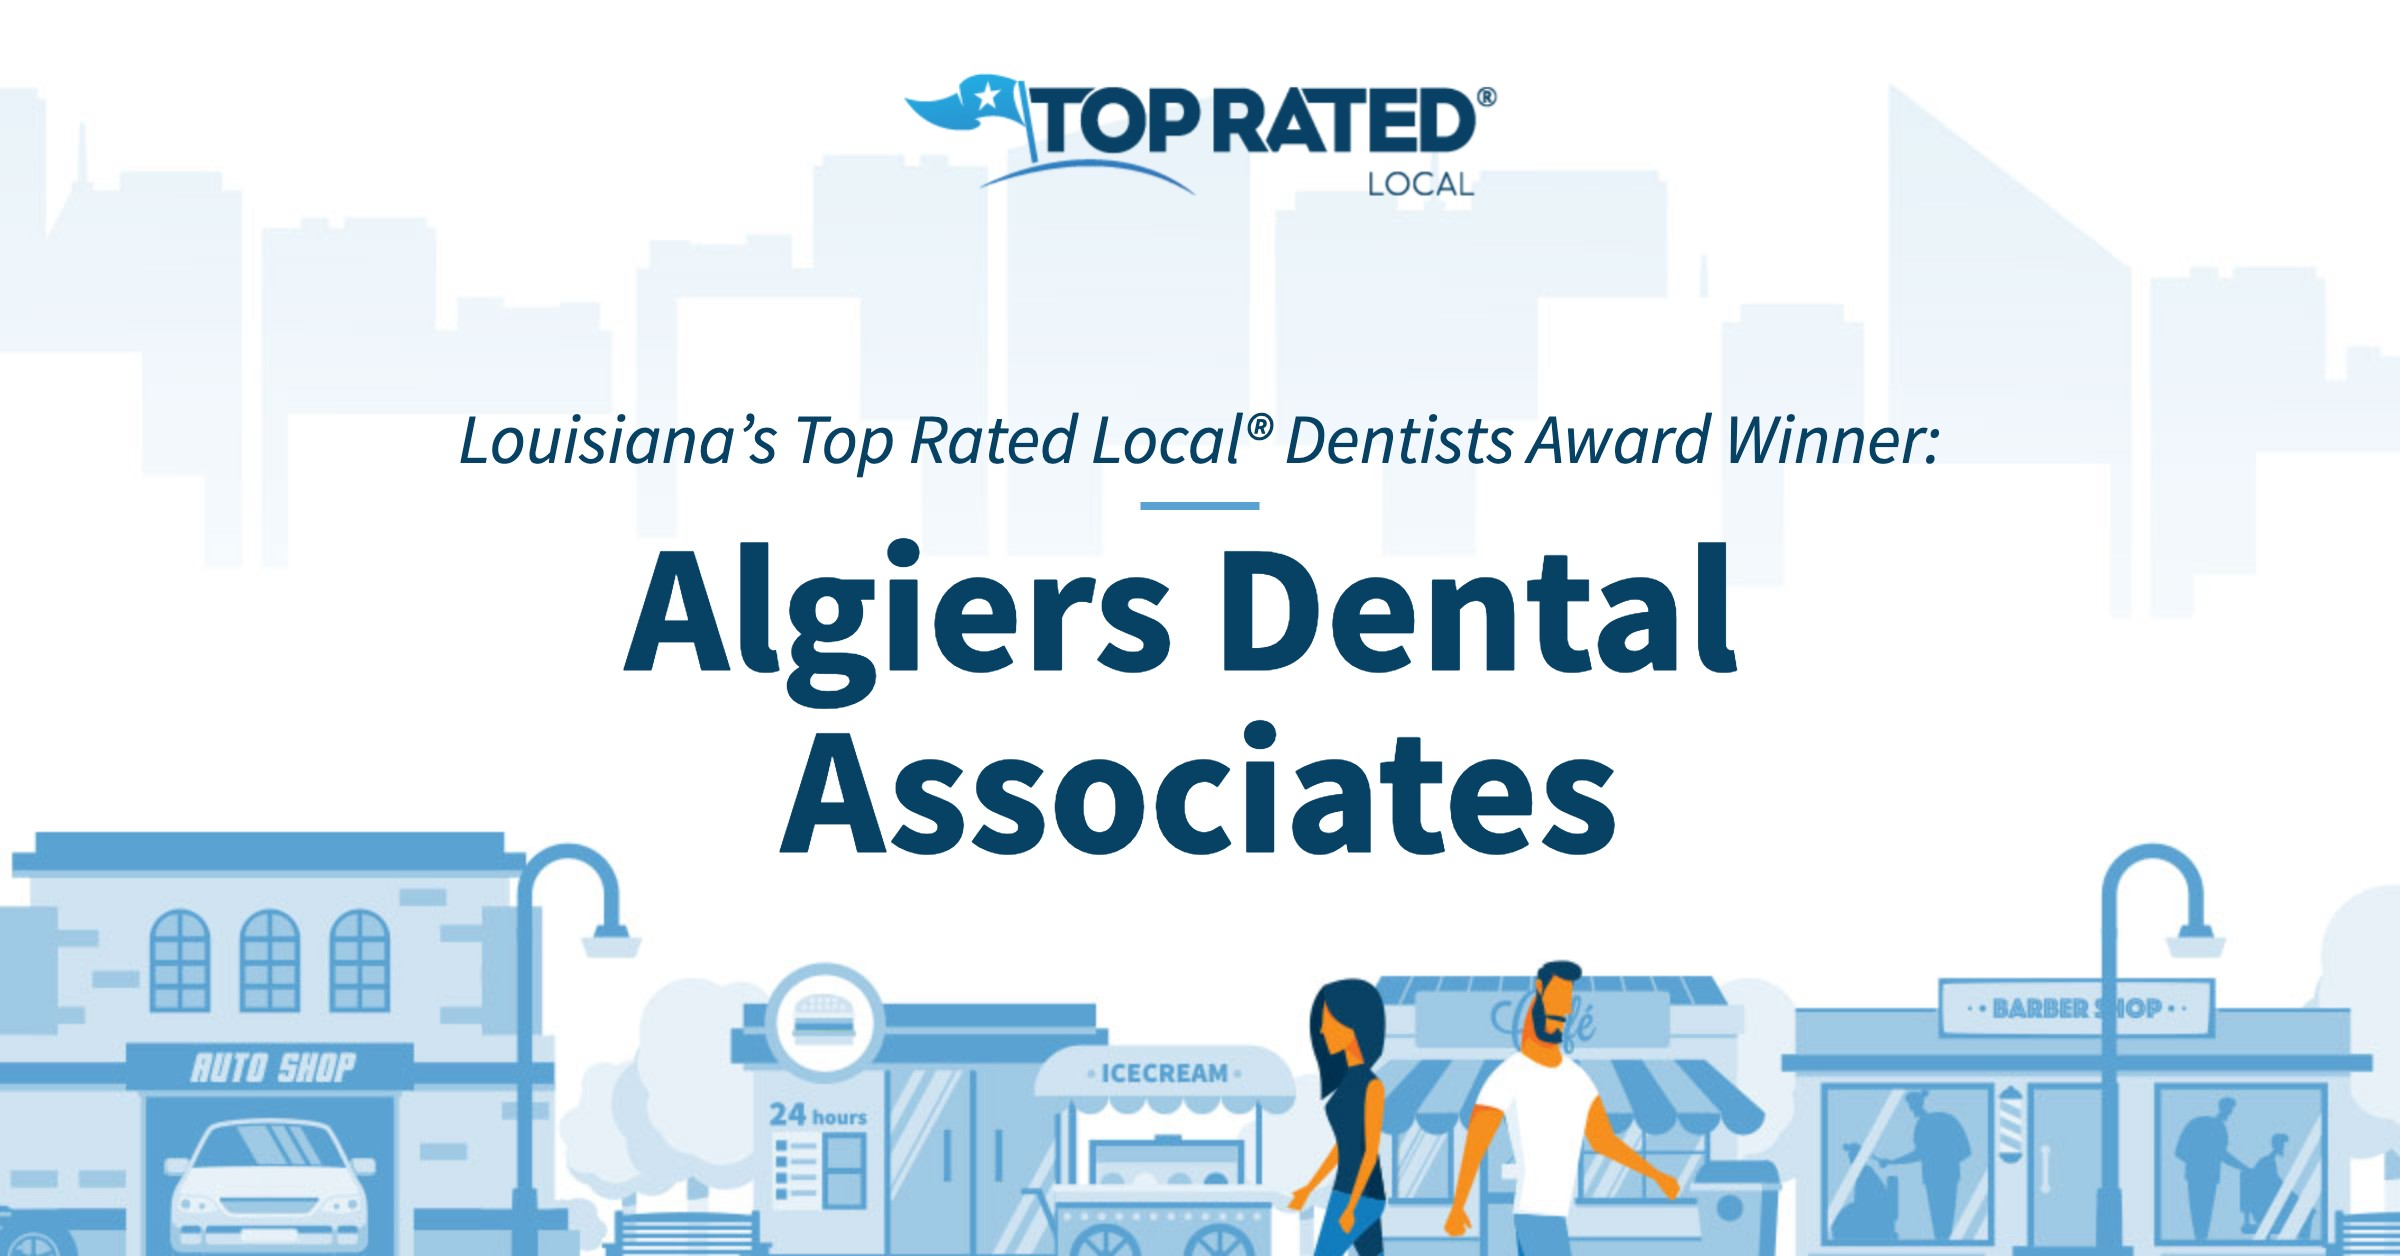 Louisiana's Top Rated Local® Dentists Award Winner: Algiers Dental Associates